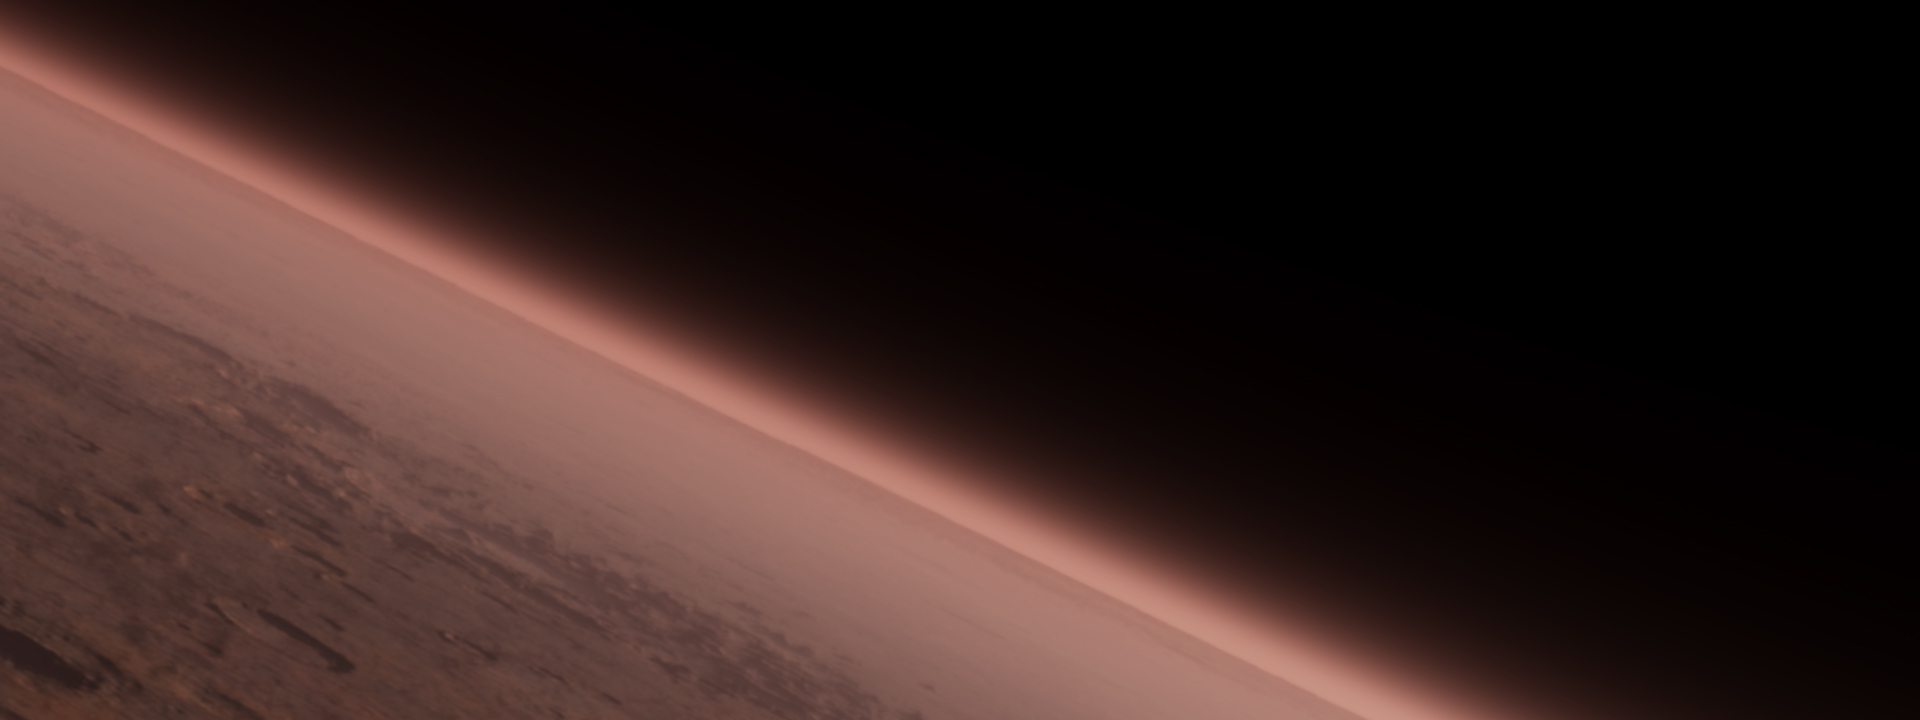 Image of Mars' atmosphere and limb.